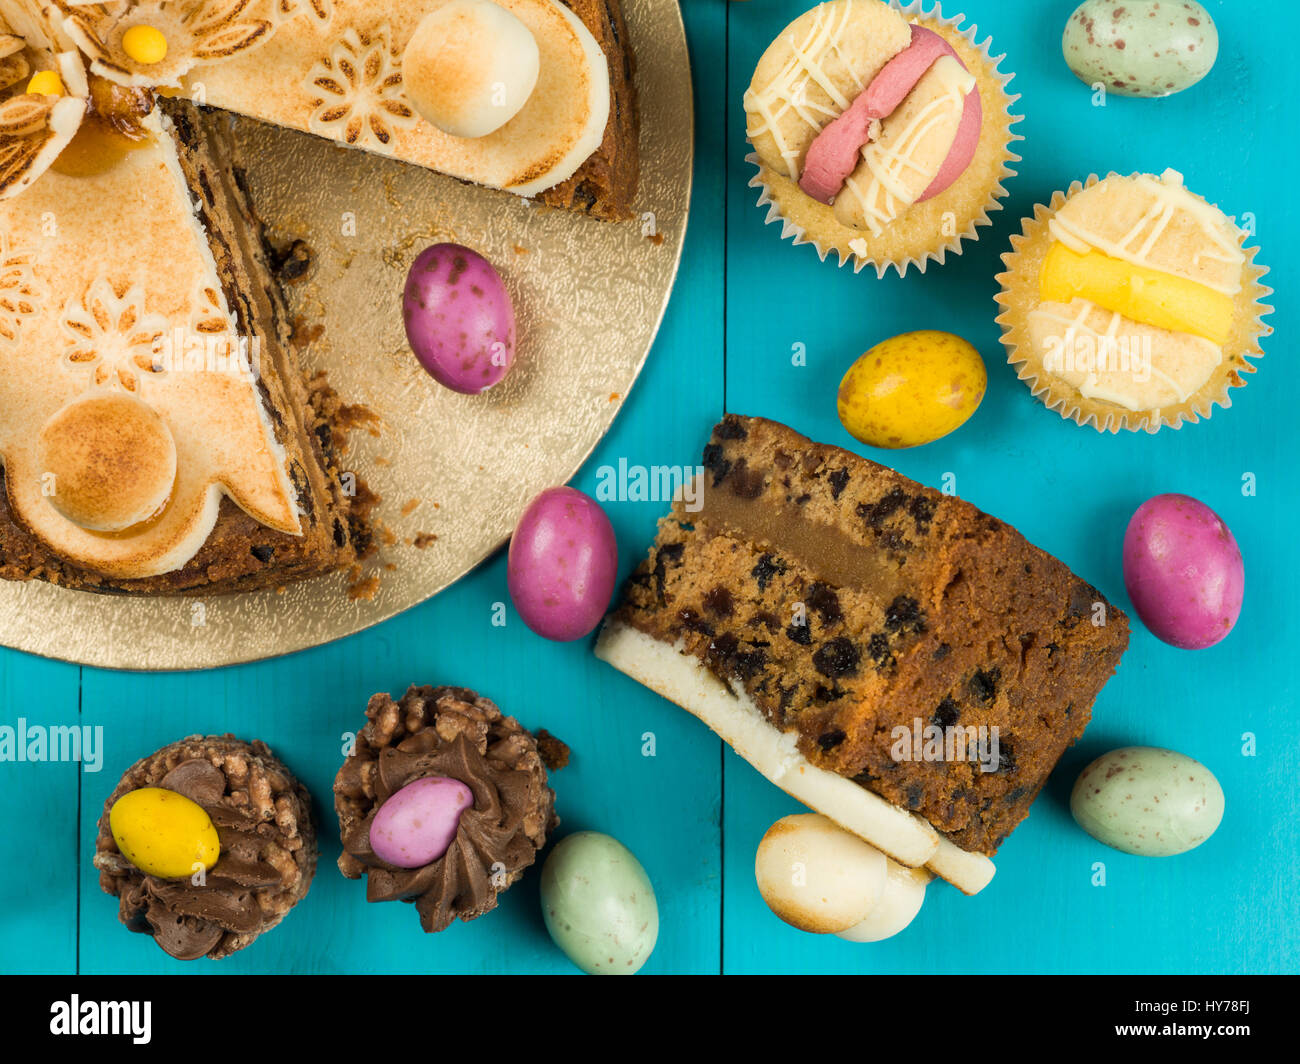 Traditional Easter Sunday Afternoon Tea and Cakes Against a Blue Background - Stock Image